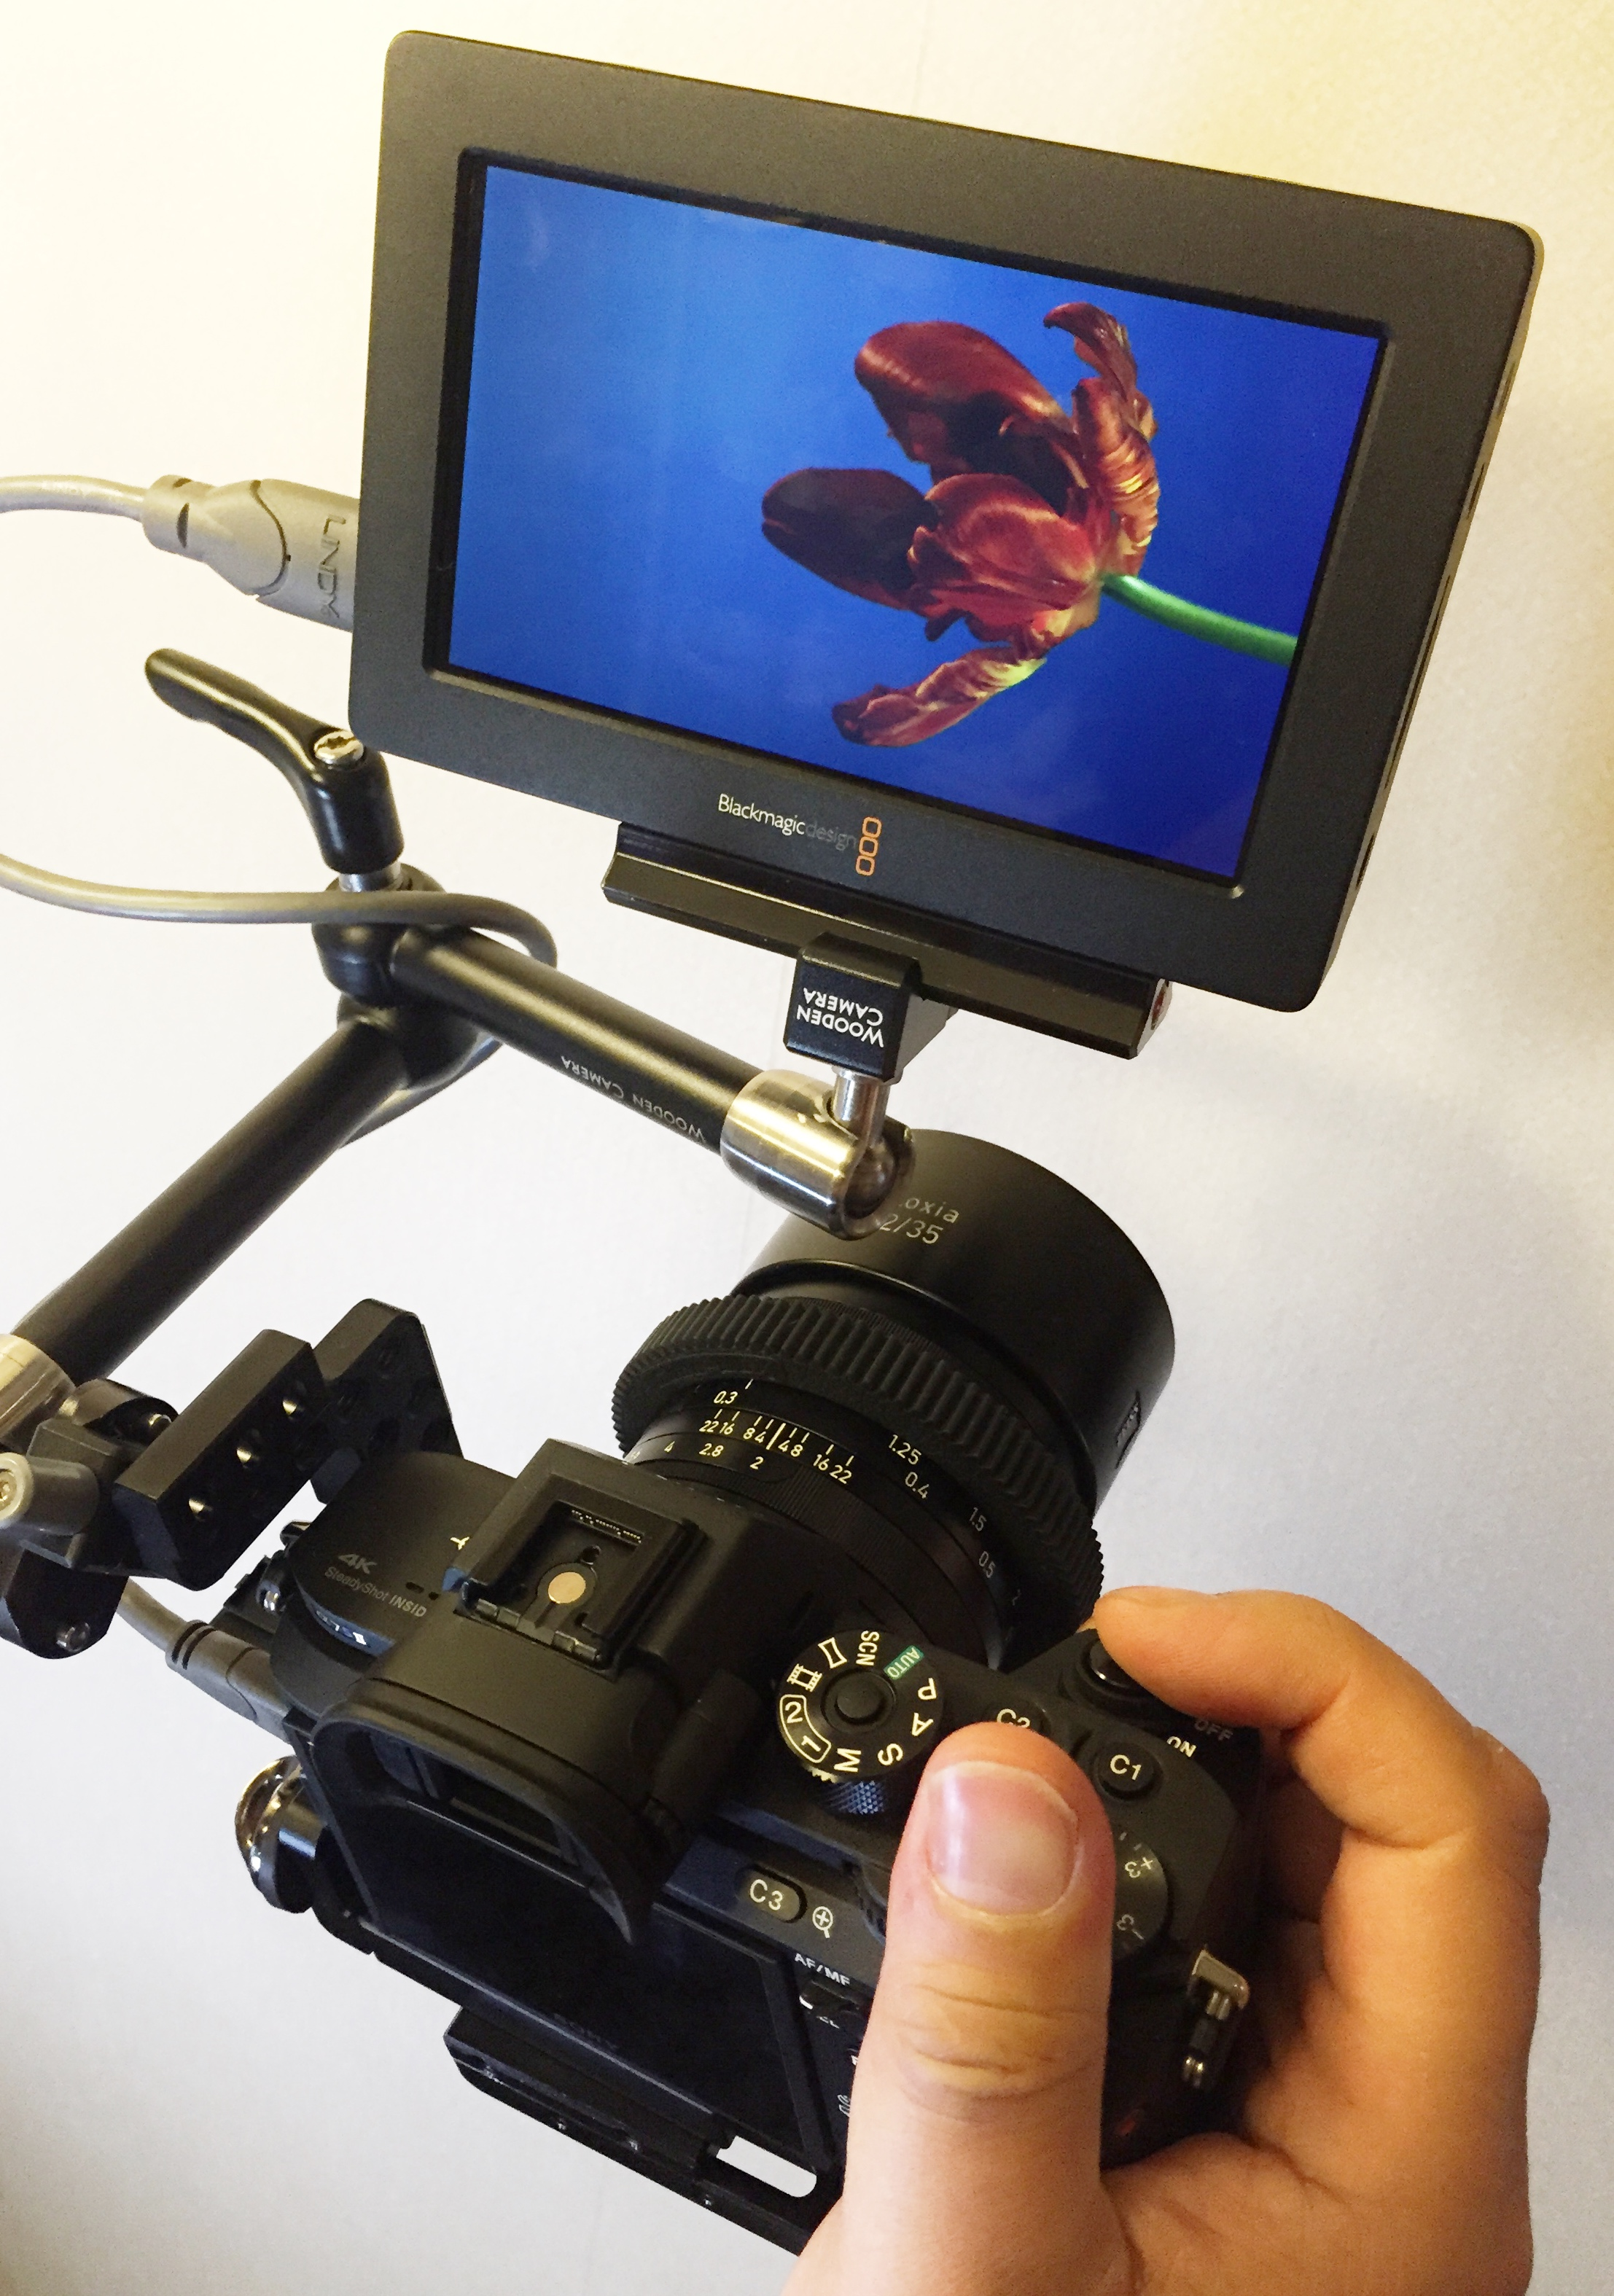 Blackmagic Design Video Assist With Firmware Version 1 1 Reviewed A 495 Recorder For The Masses Newsshooter,Attractive Pottery Vase Designs Painting